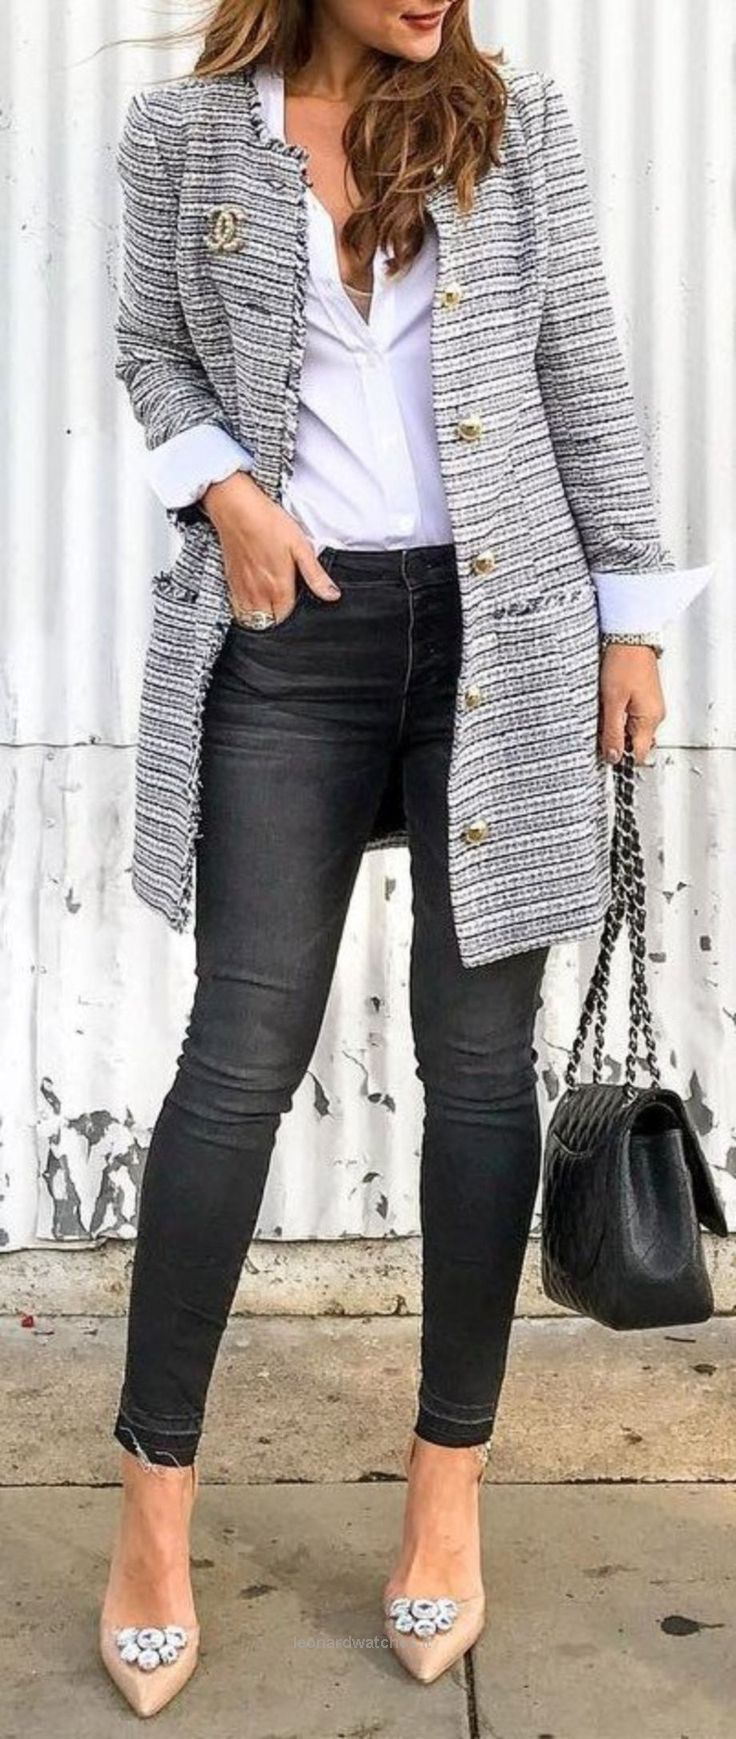 I've been loving the look of fancy jackets paired with jeans lately